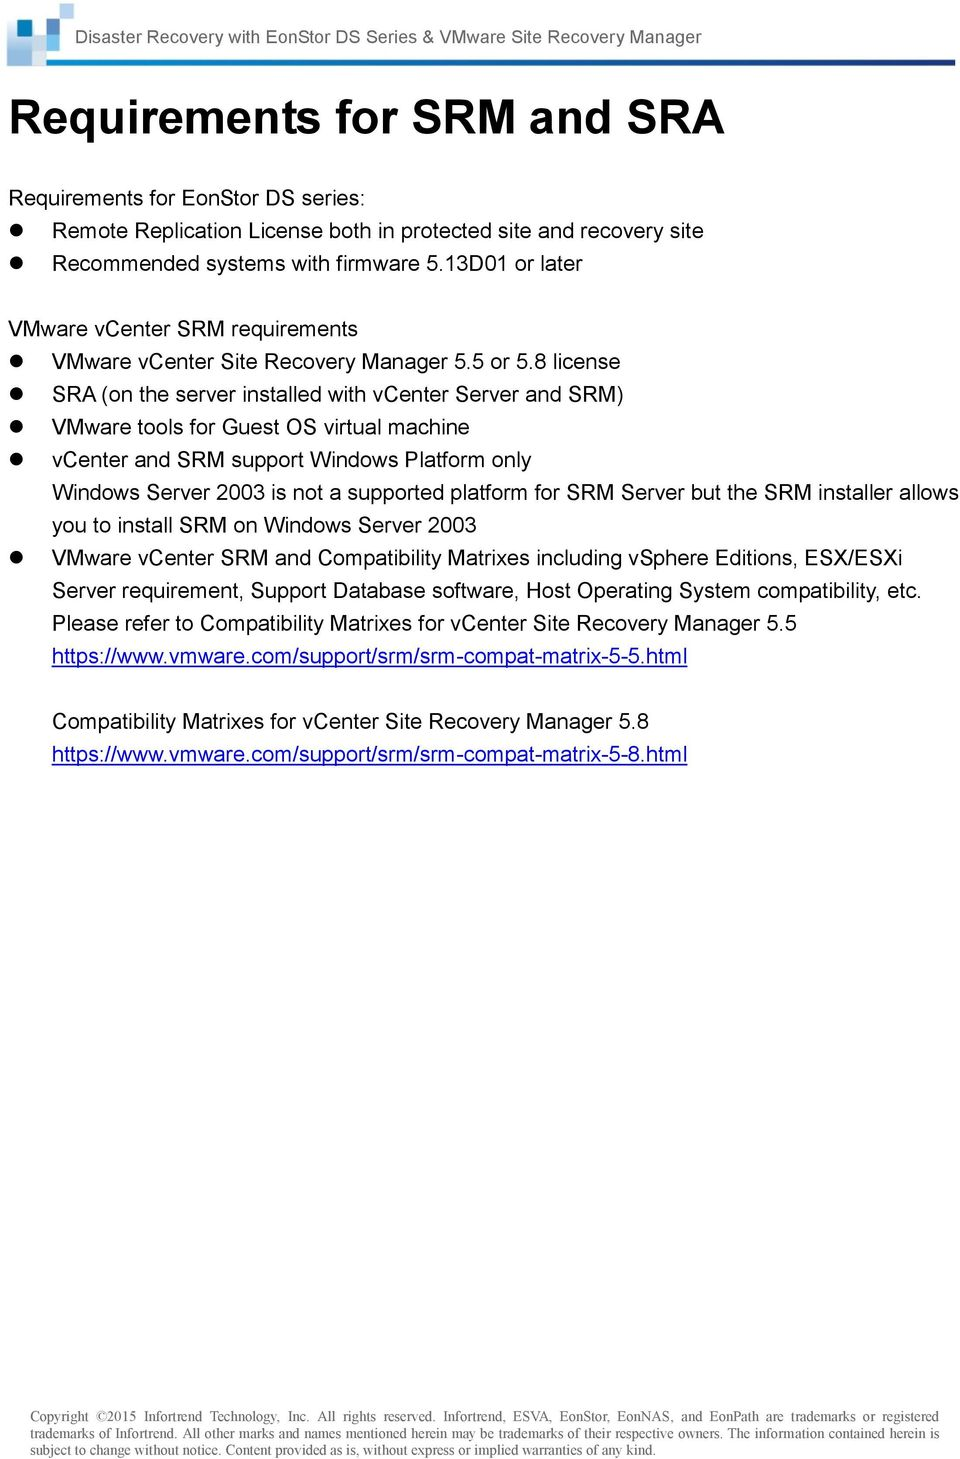 Disaster Recovery with EonStor DS Series &VMware Site Recovery